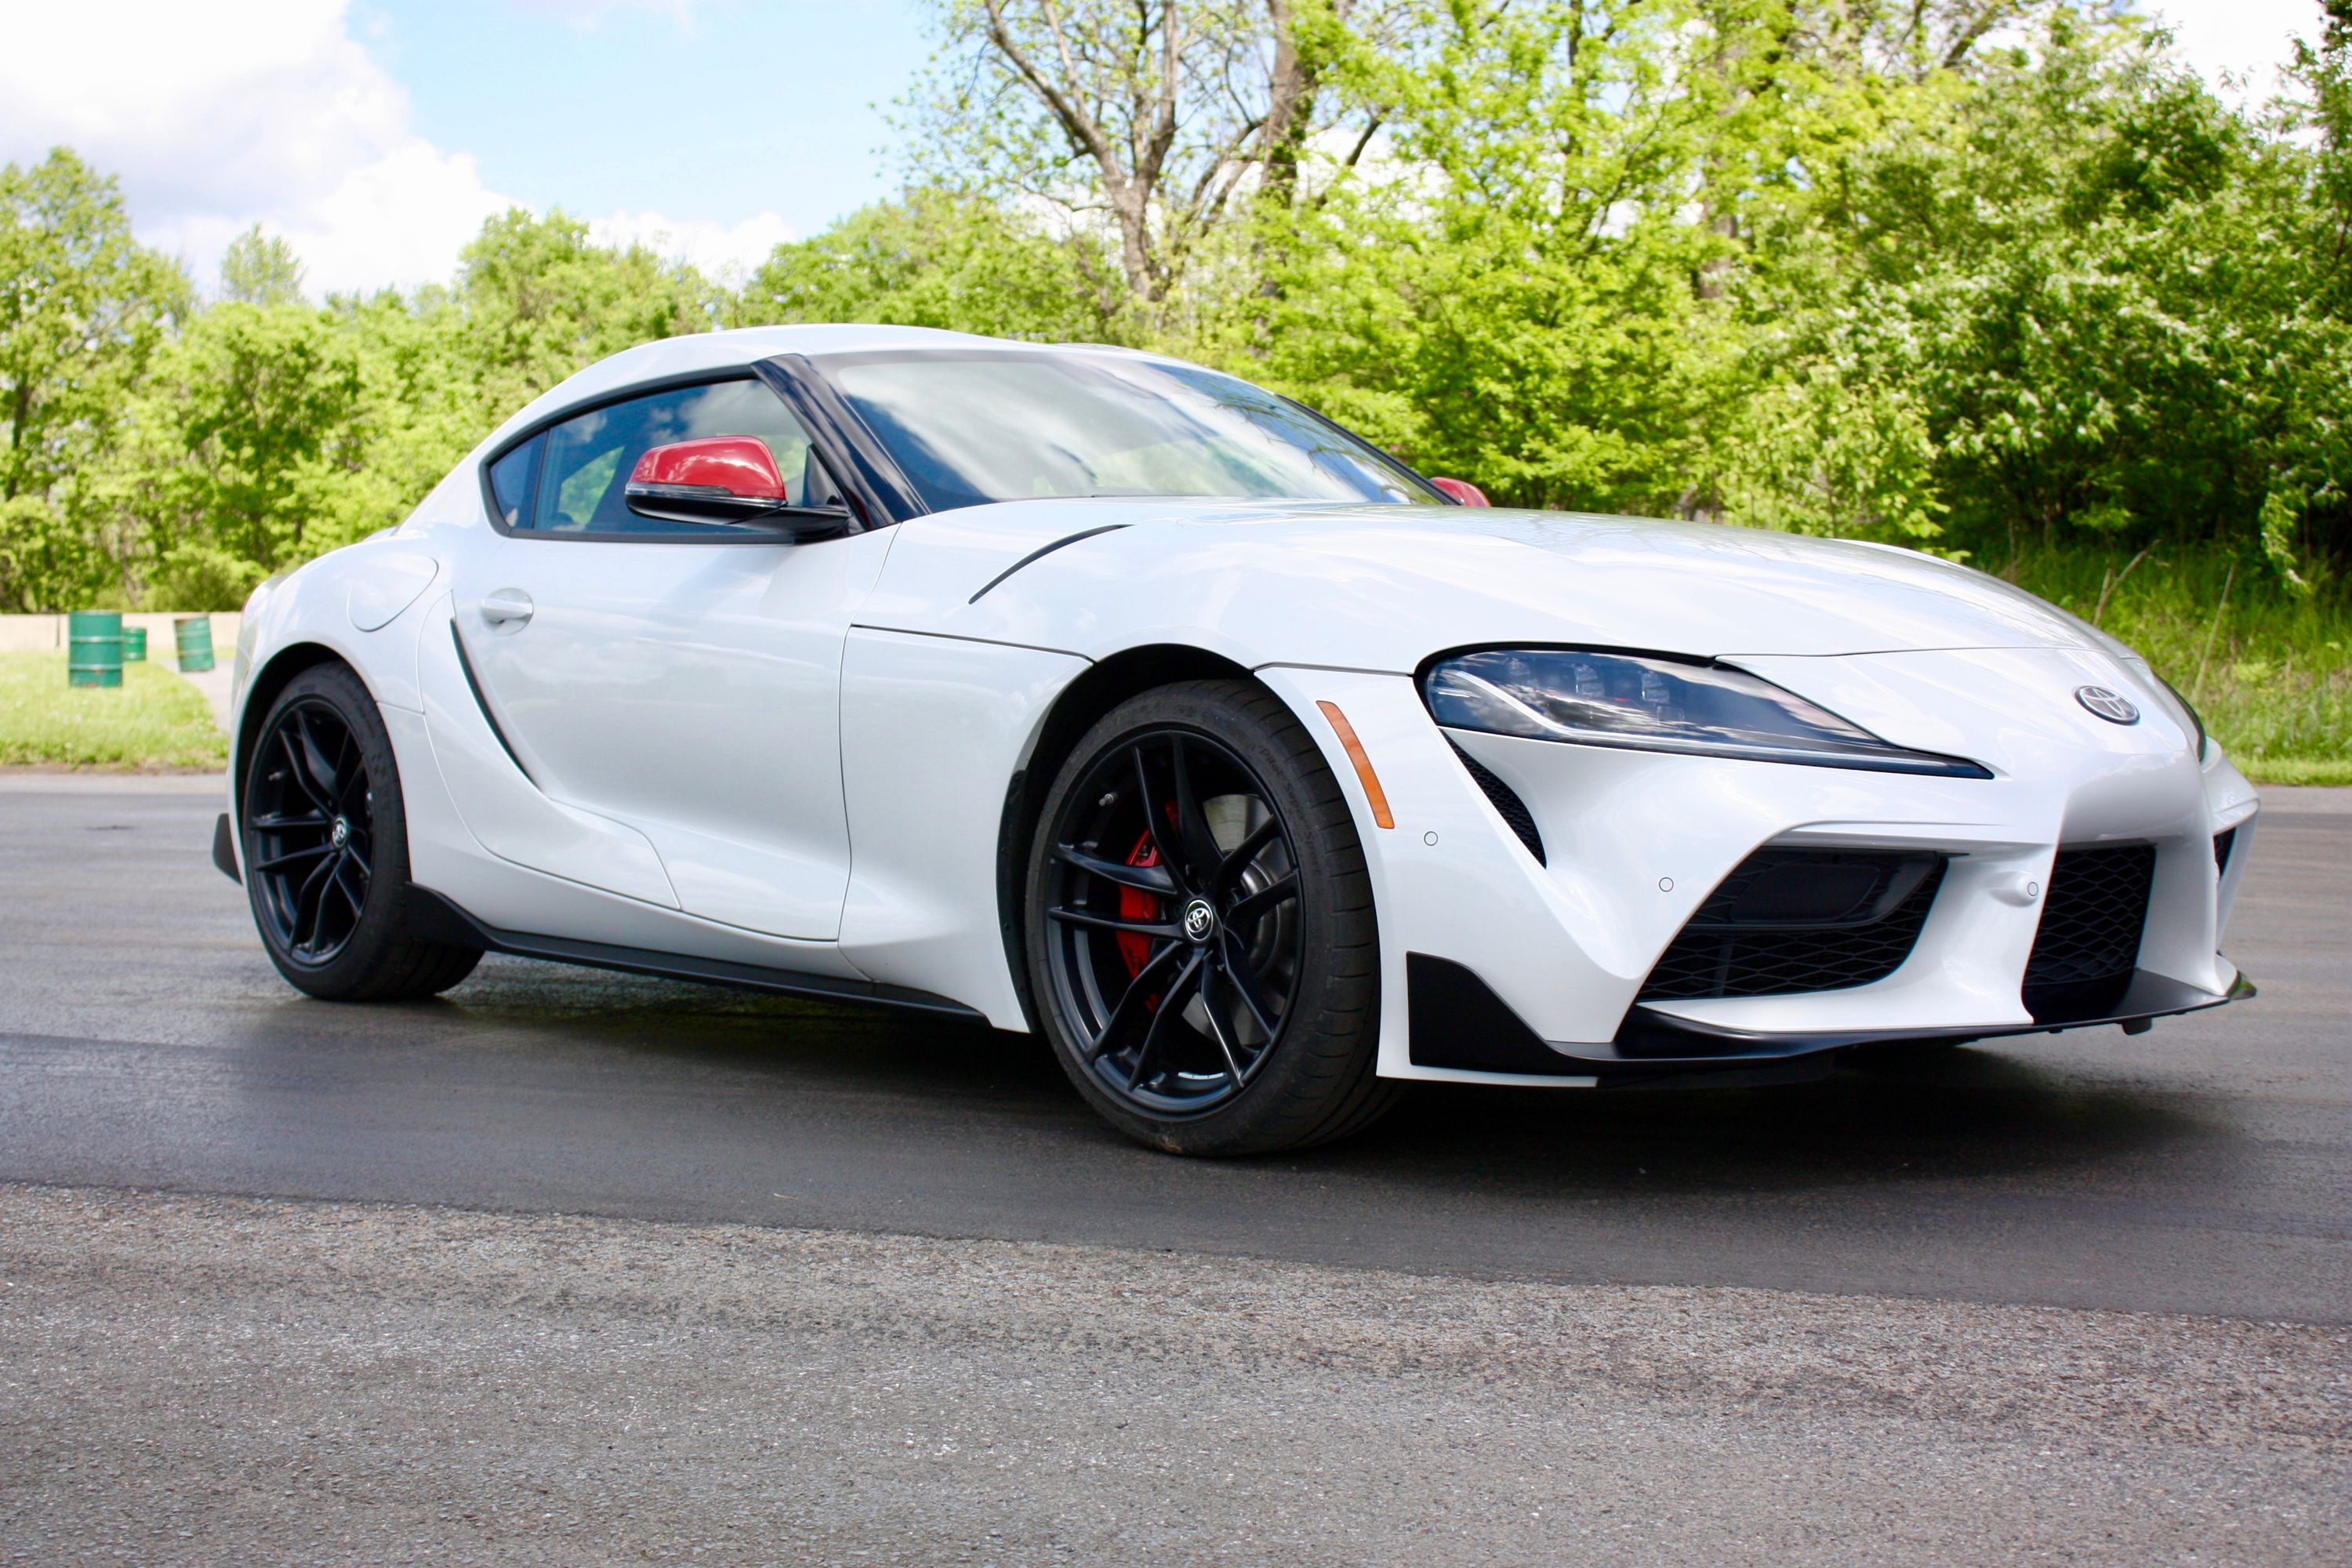 There S A Good Reason Why Toyota Teamed Up With Bmw To Build The 2020 Supra Top Speed Toyota Supra Toyota New Toyota Supra